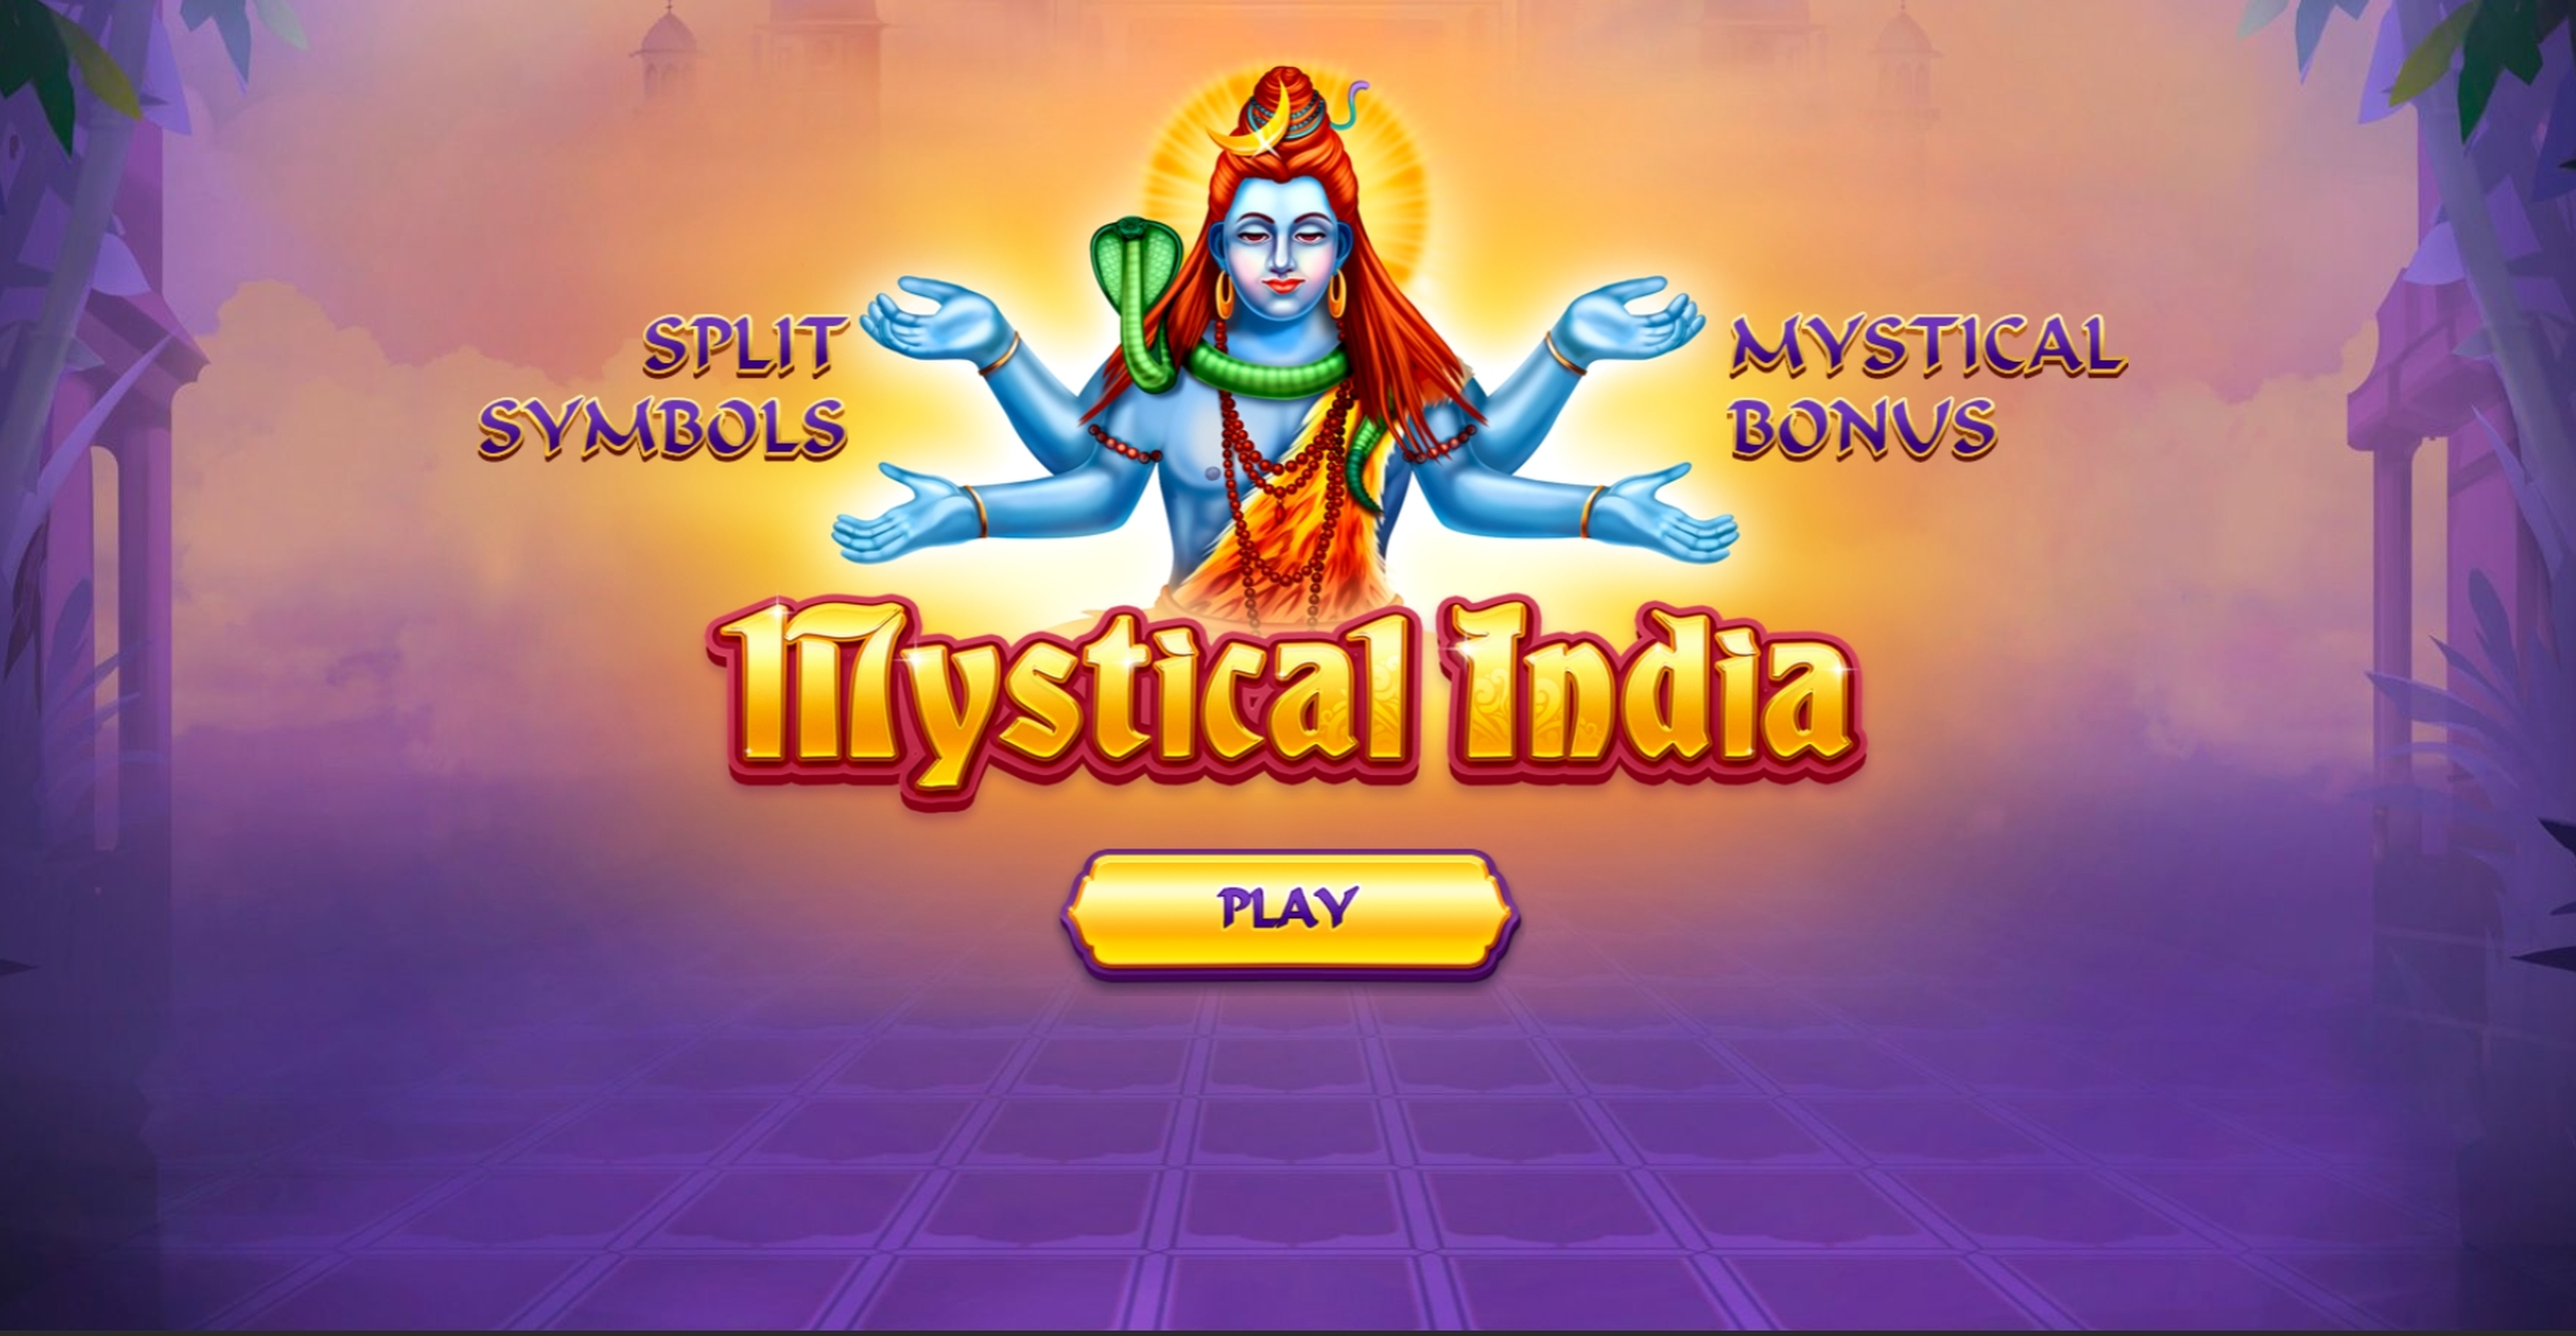 Win Money in Mystical India Free Slot Game by Skywind